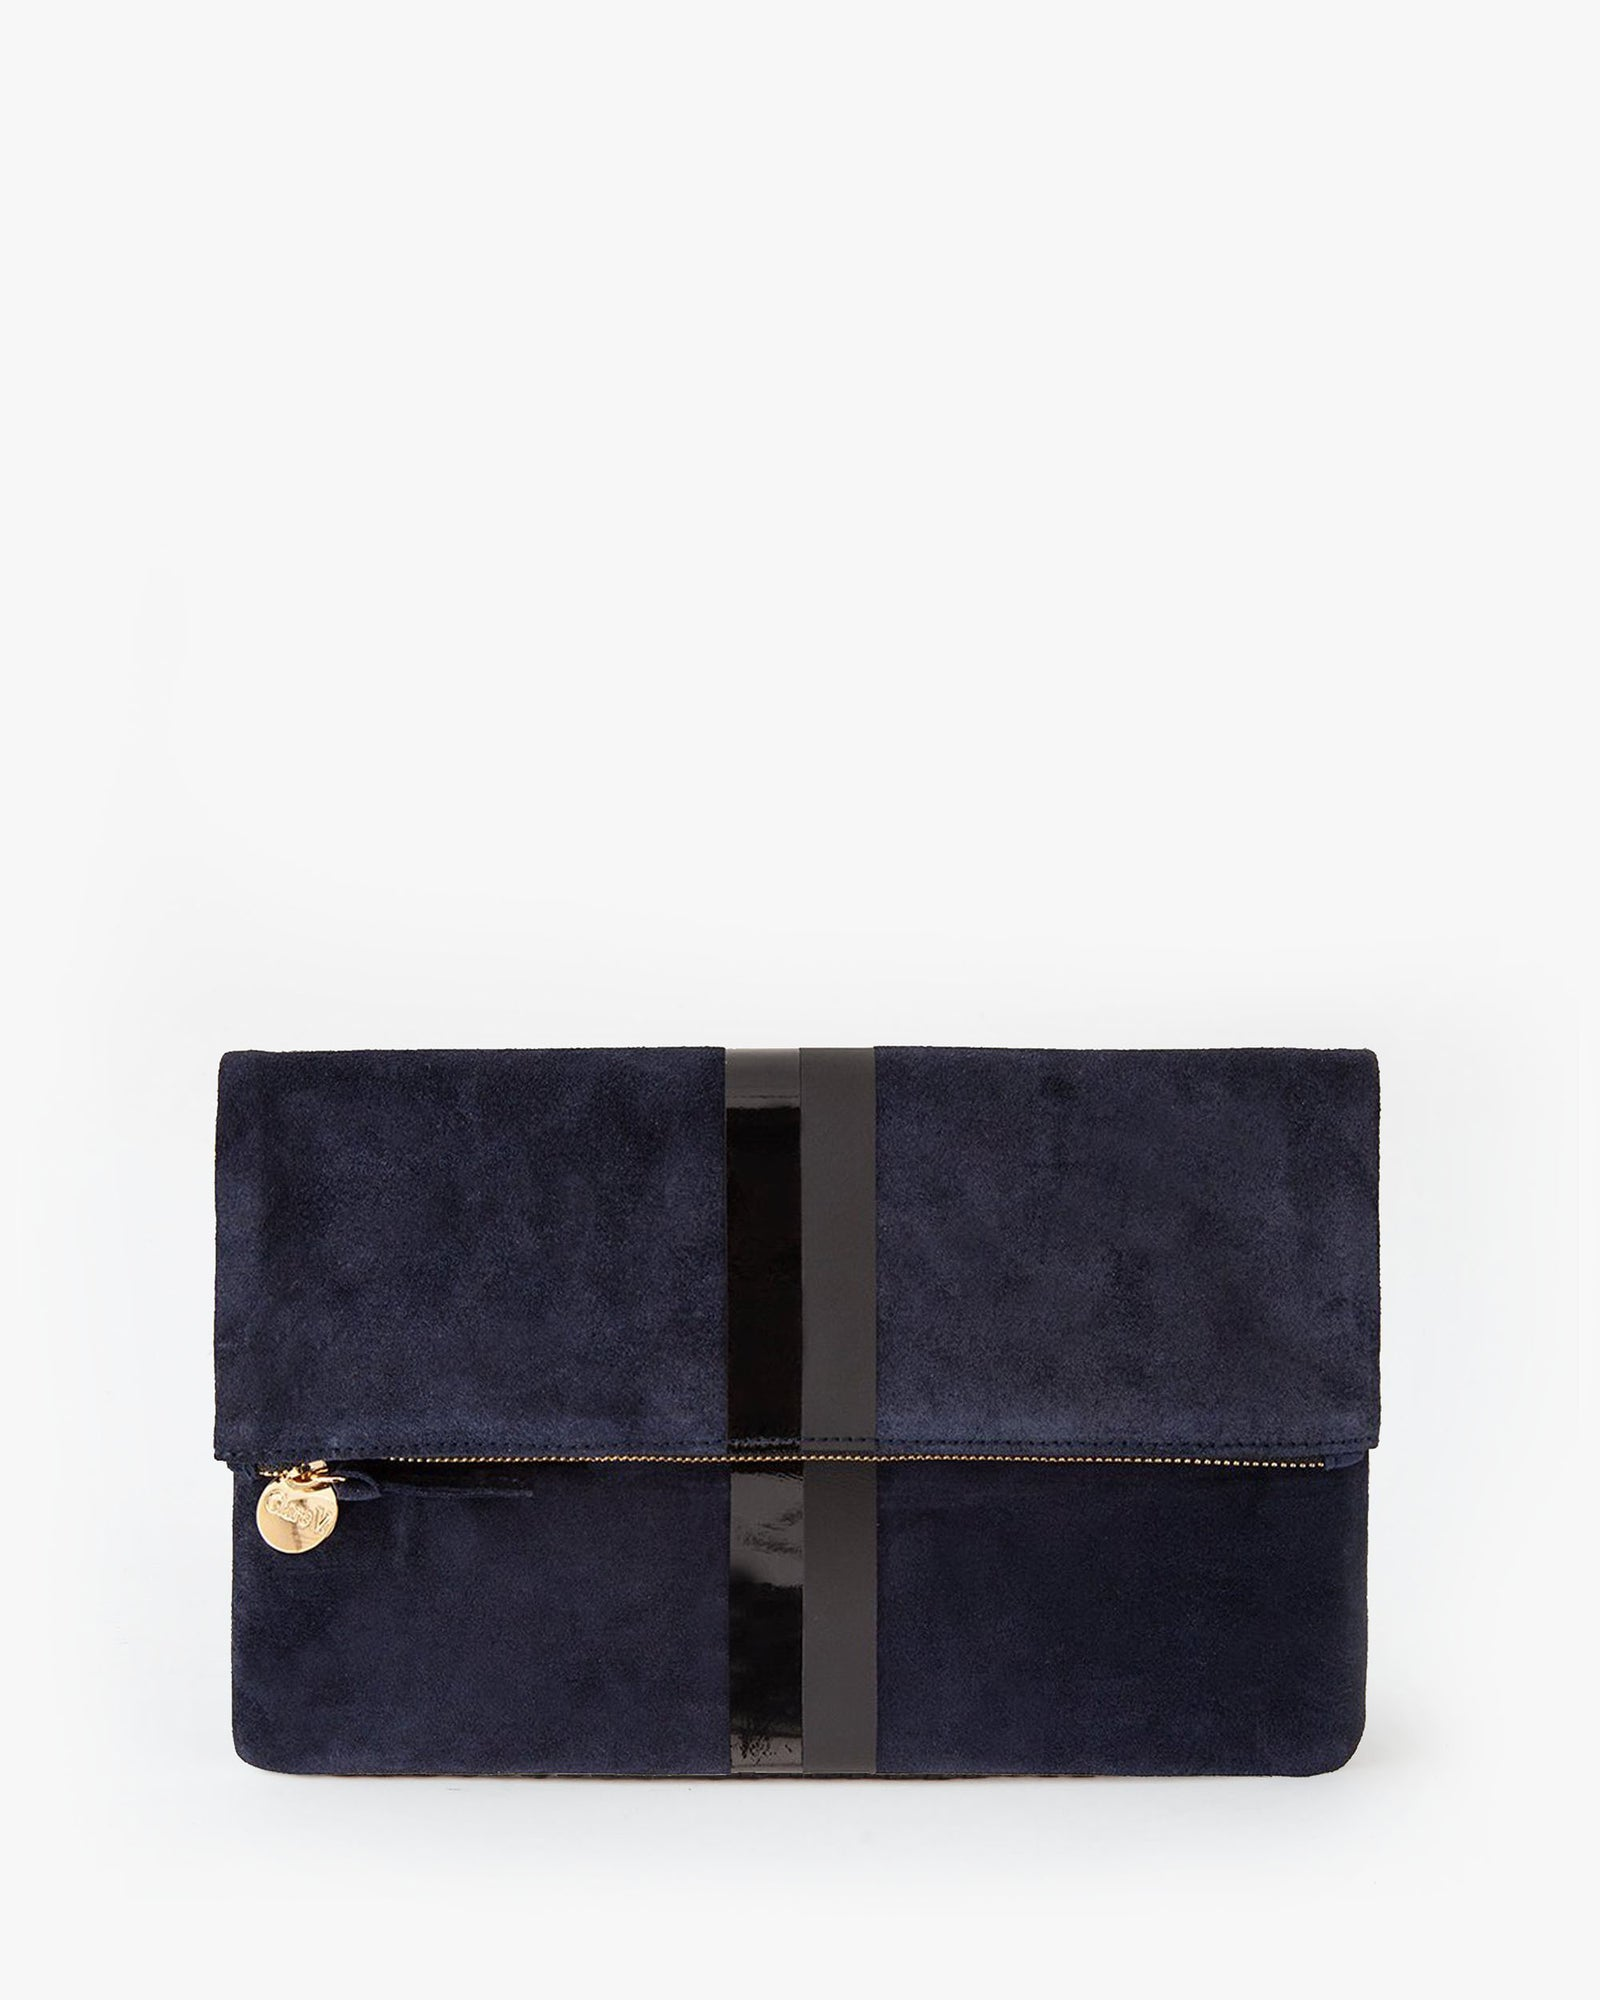 Navy w/ Stripes Foldover Clutch - Front